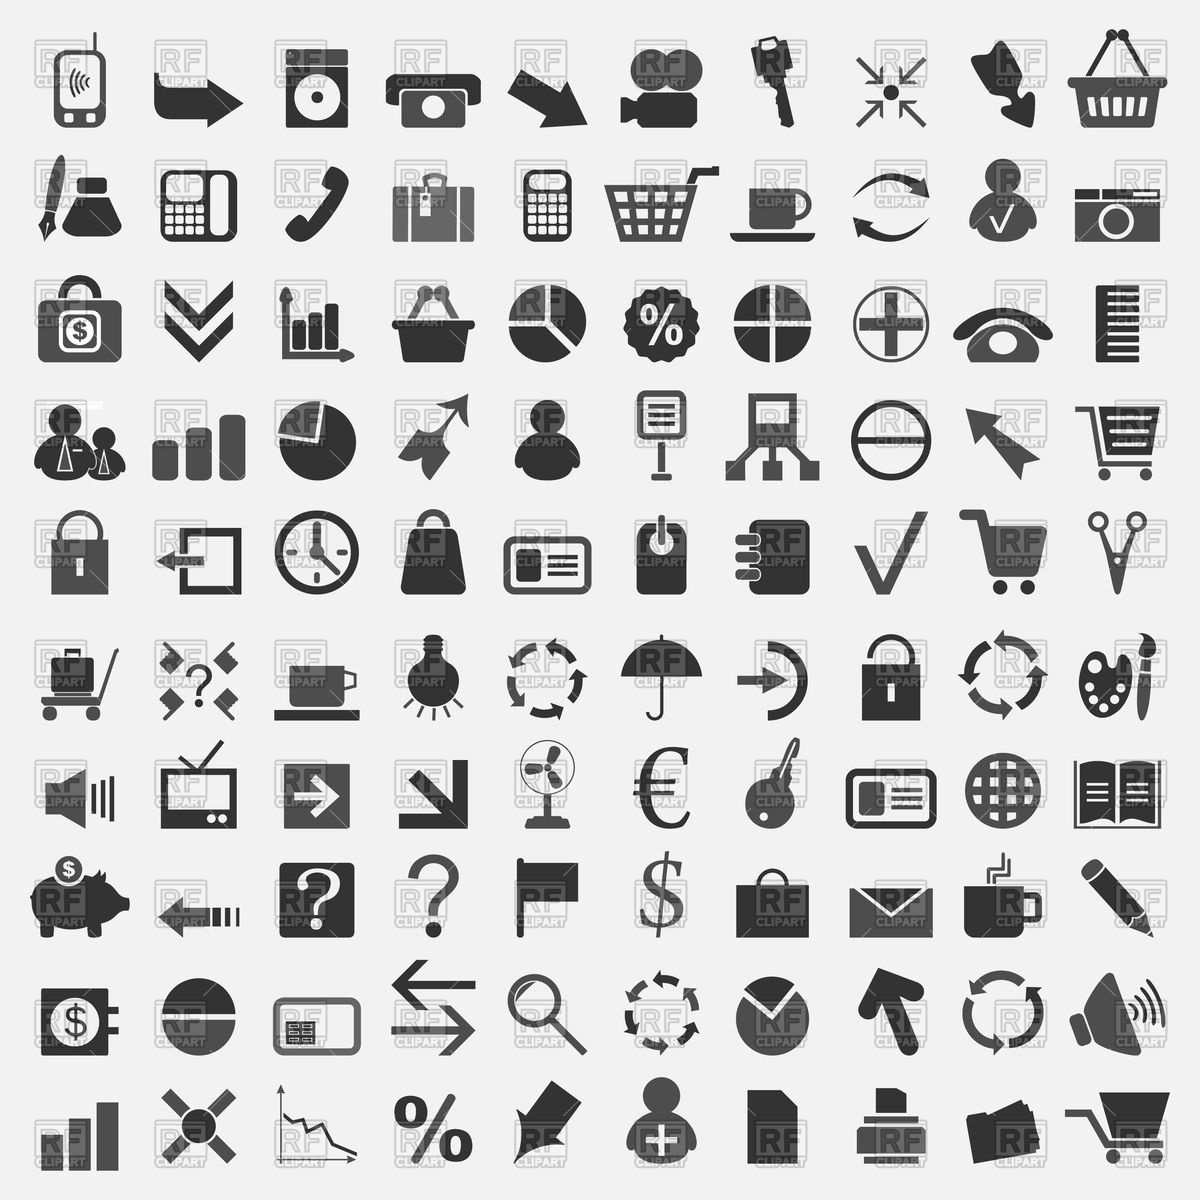 1200x1200 Collection Of Office Theme Icons Vector Image Vector Artwork Of